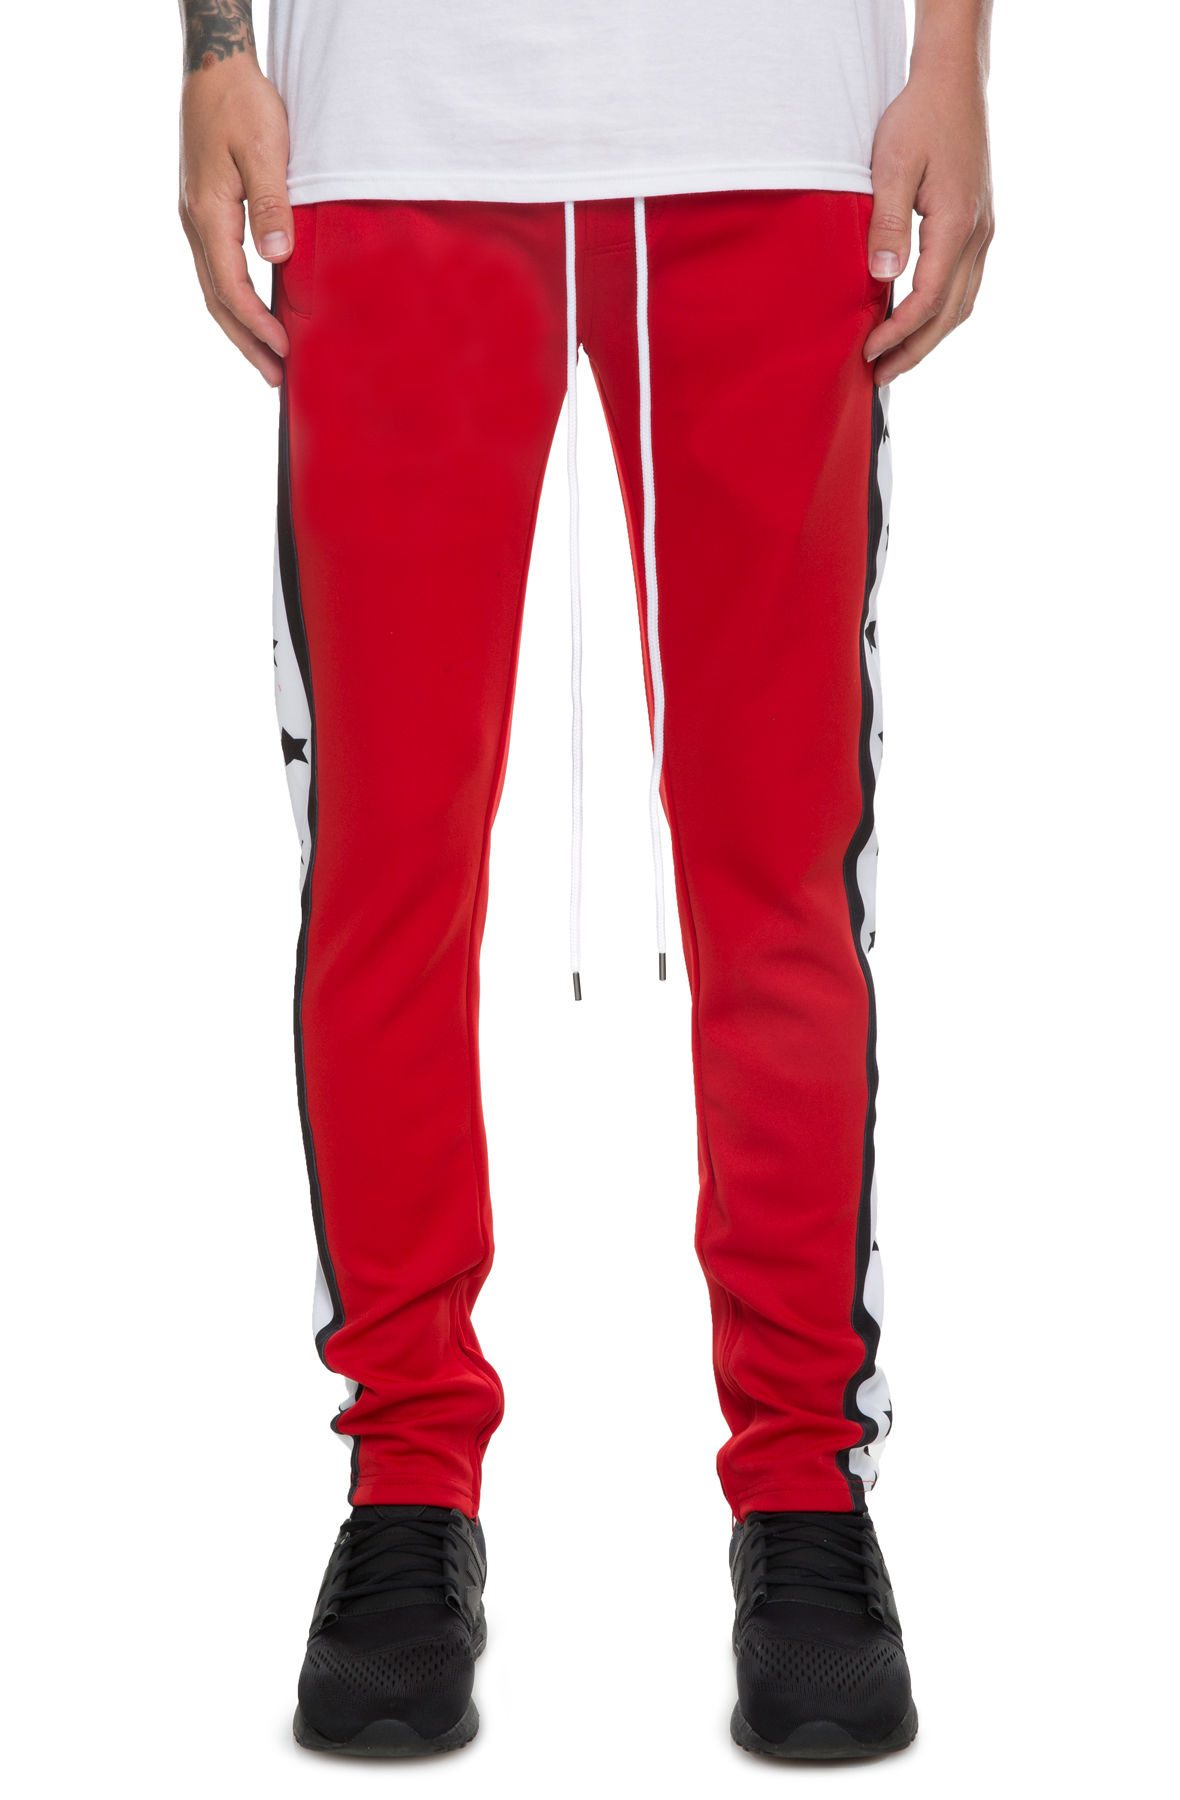 Image of The Independence Track Pants in Red